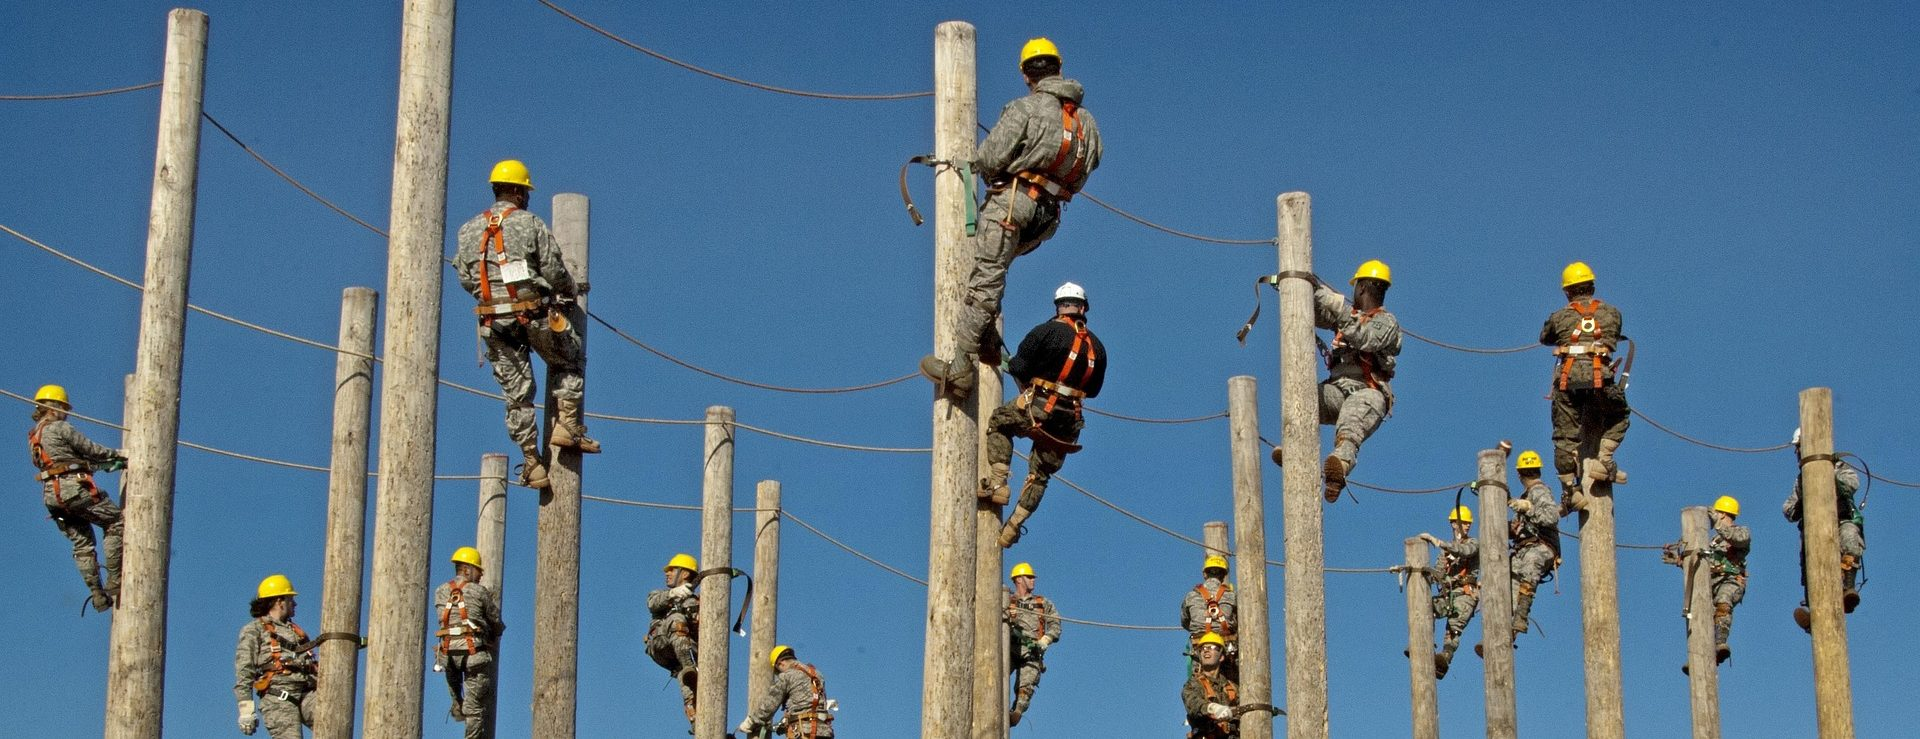 Several workers on the top of electric poles working